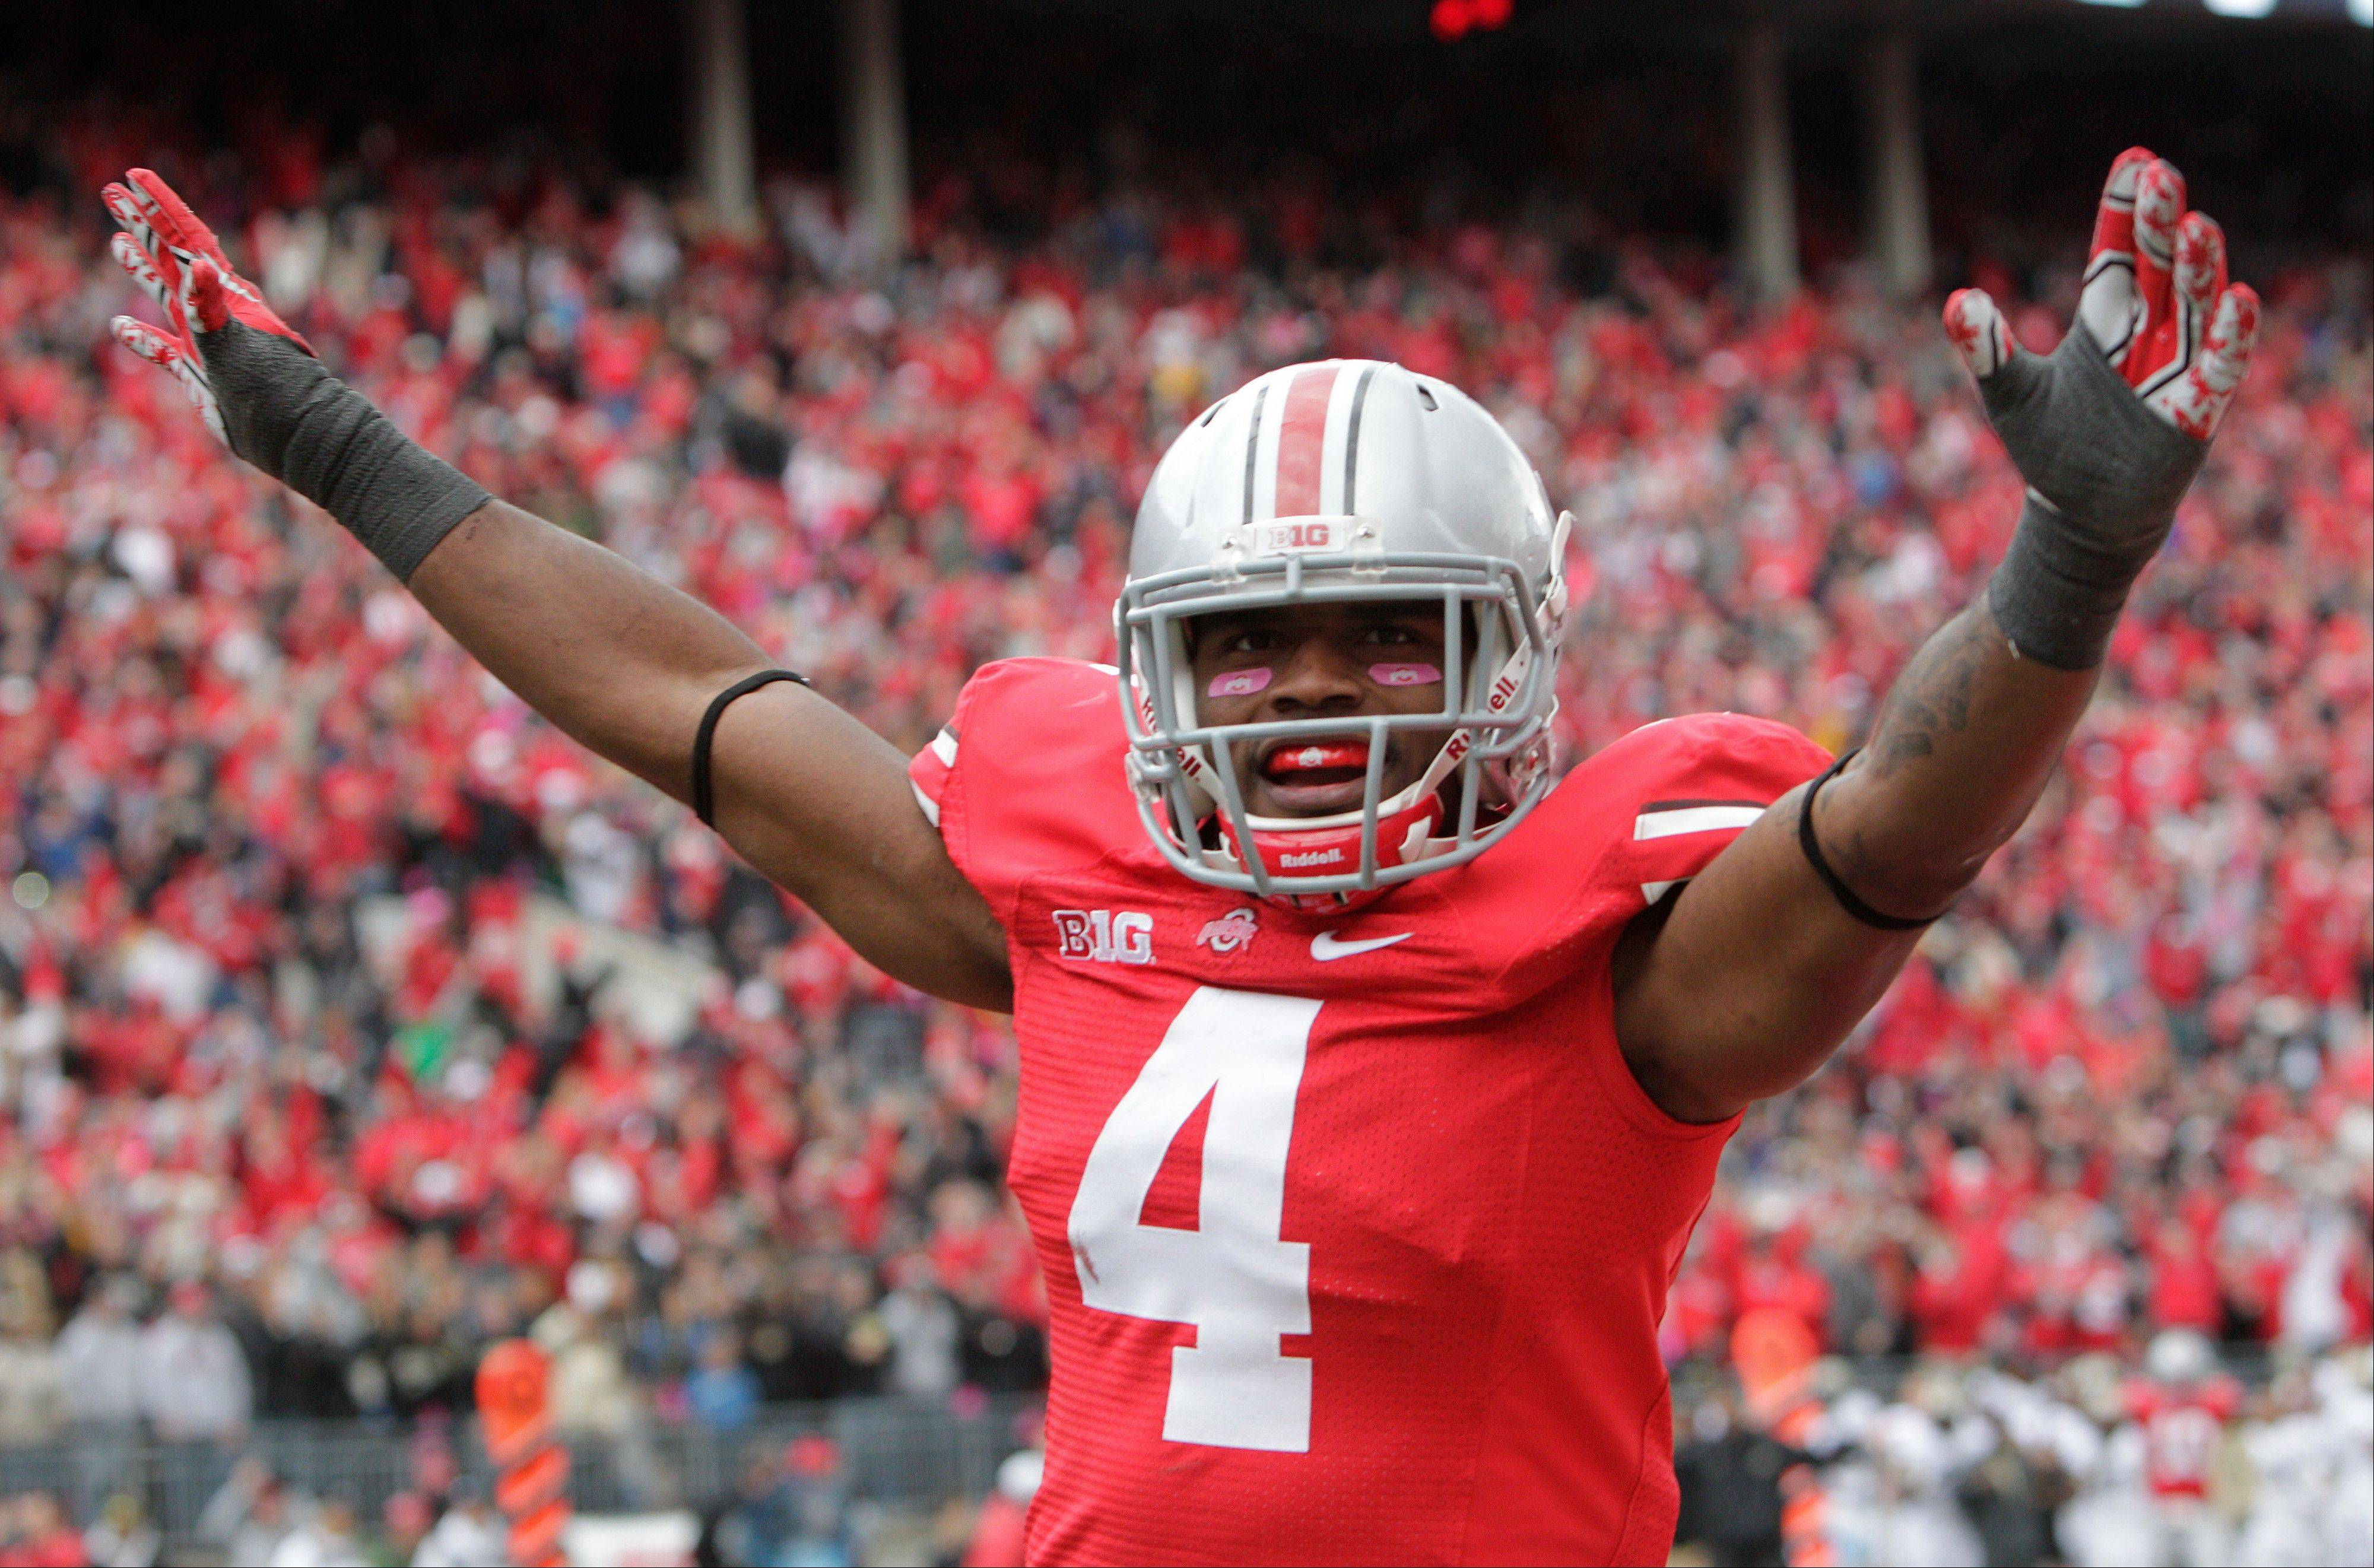 Despite losses, Ohio State's D might be better